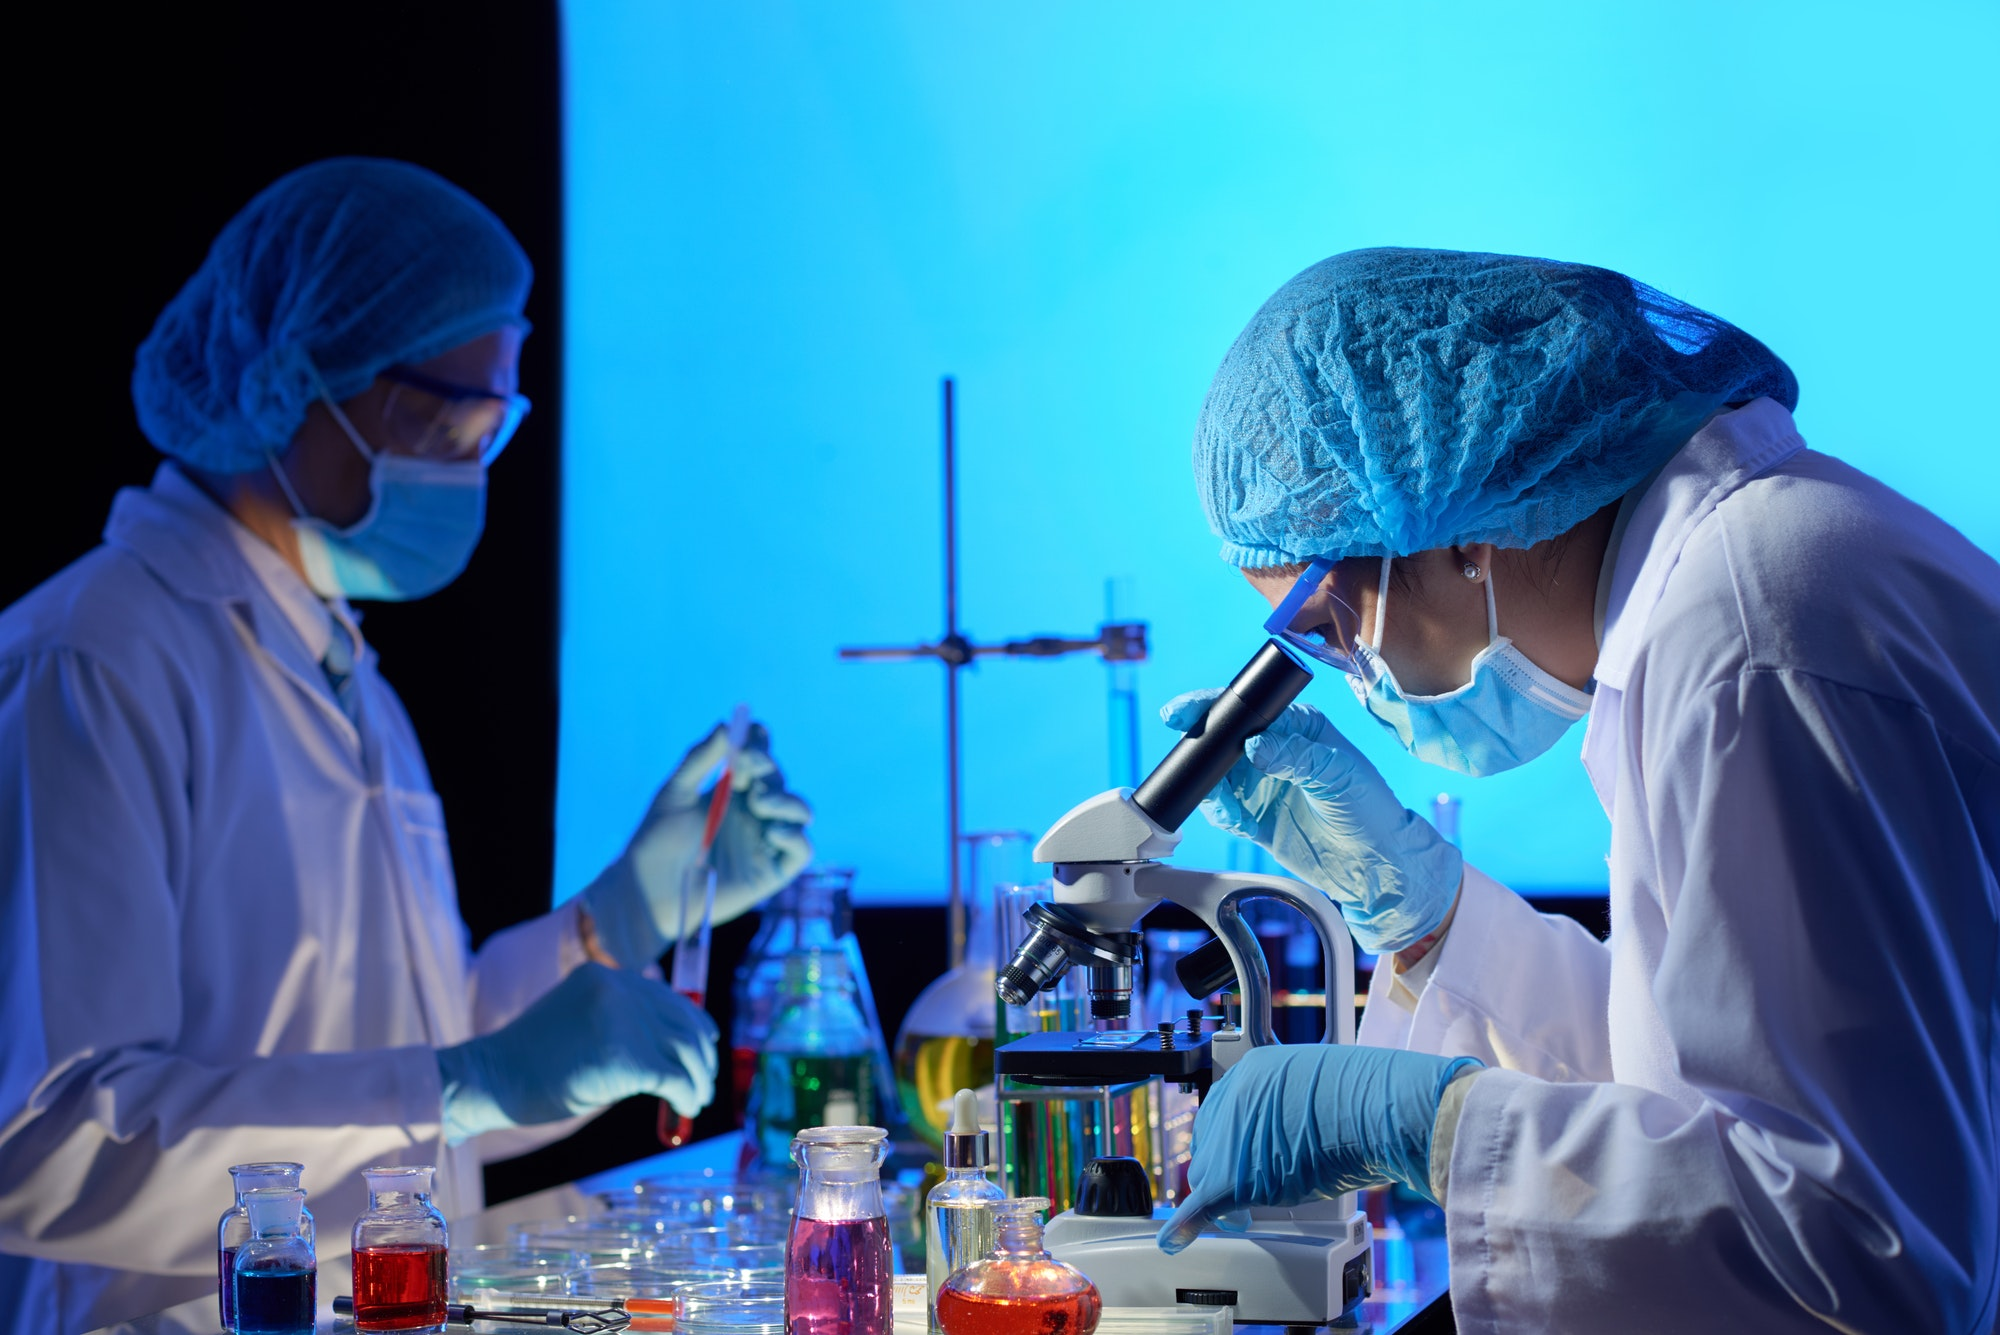 Scientists working on covid-19 vaccine